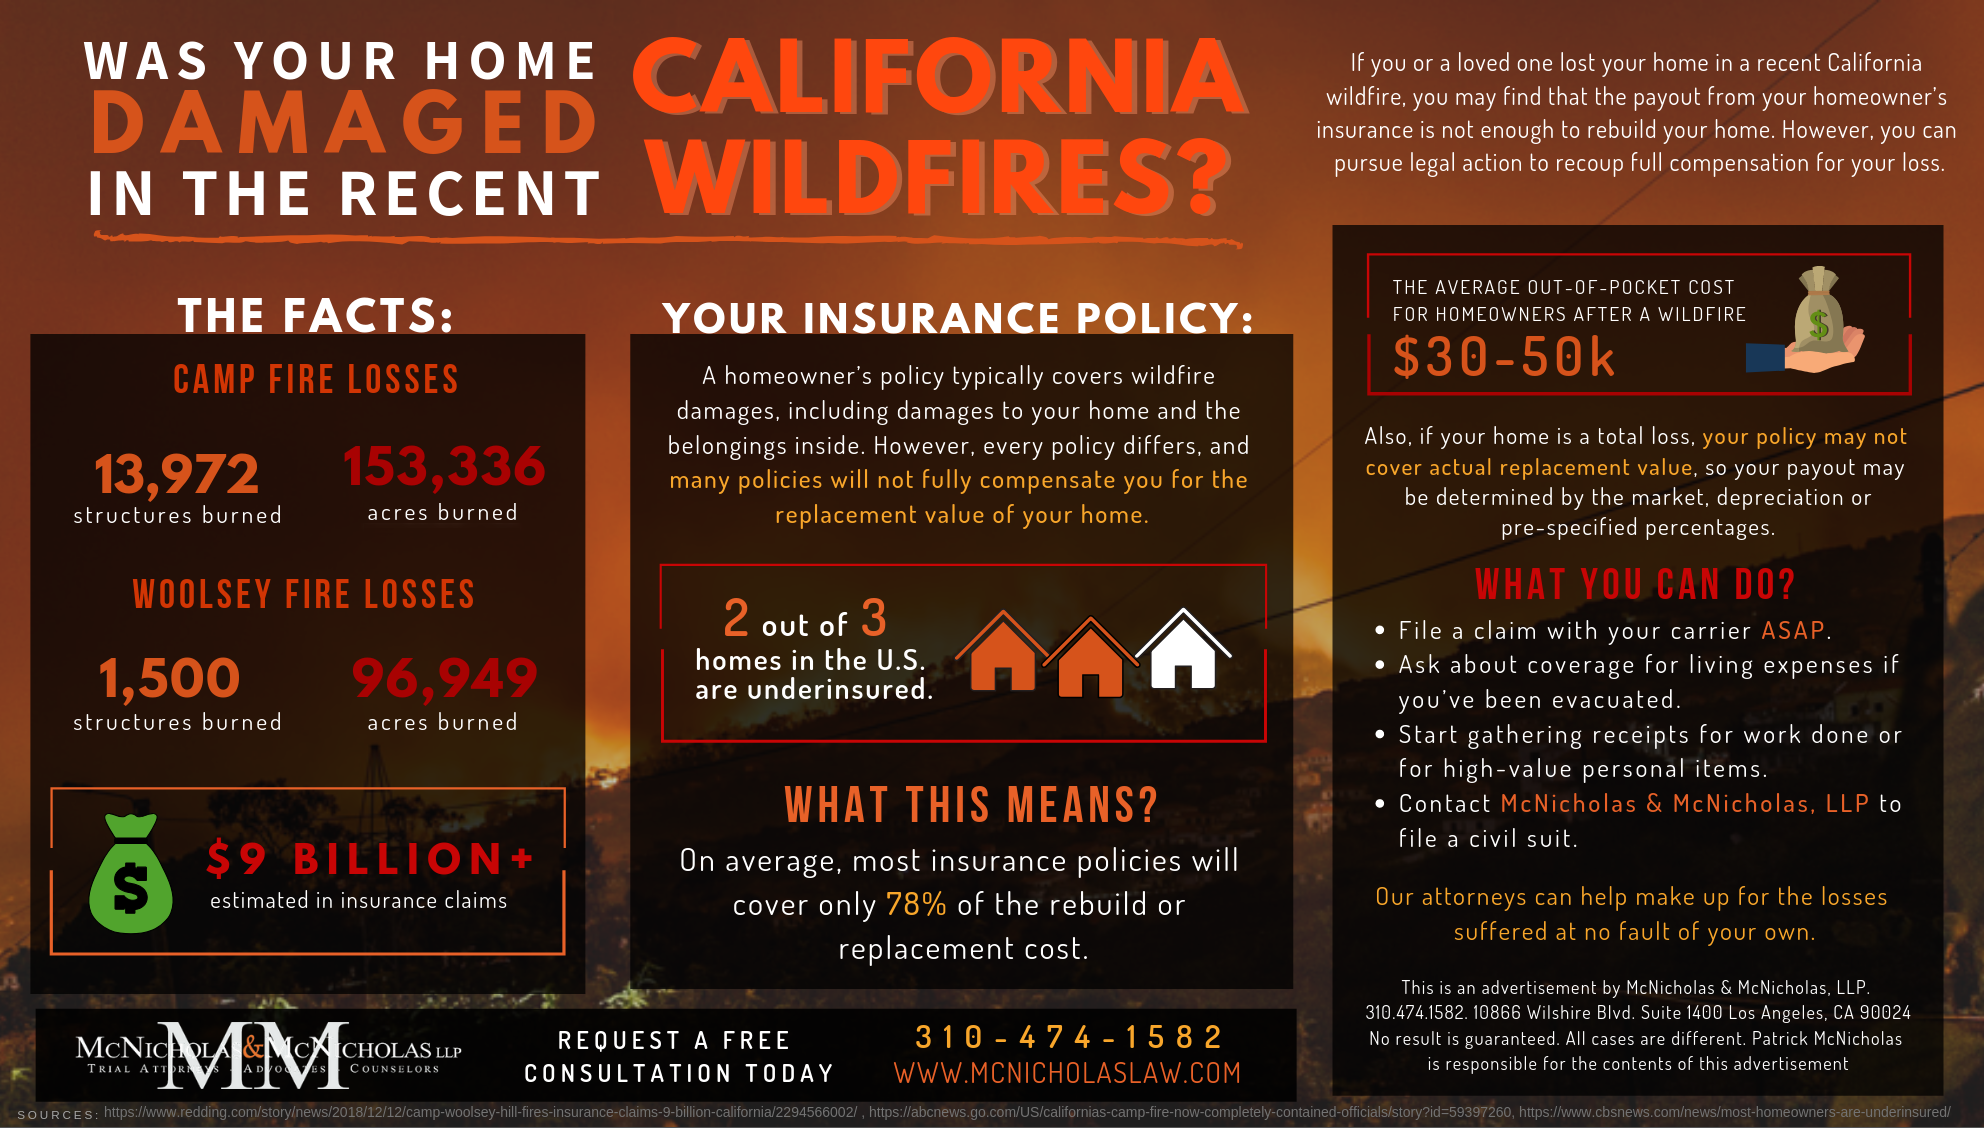 How to recover damage to your home after the California wildfires.